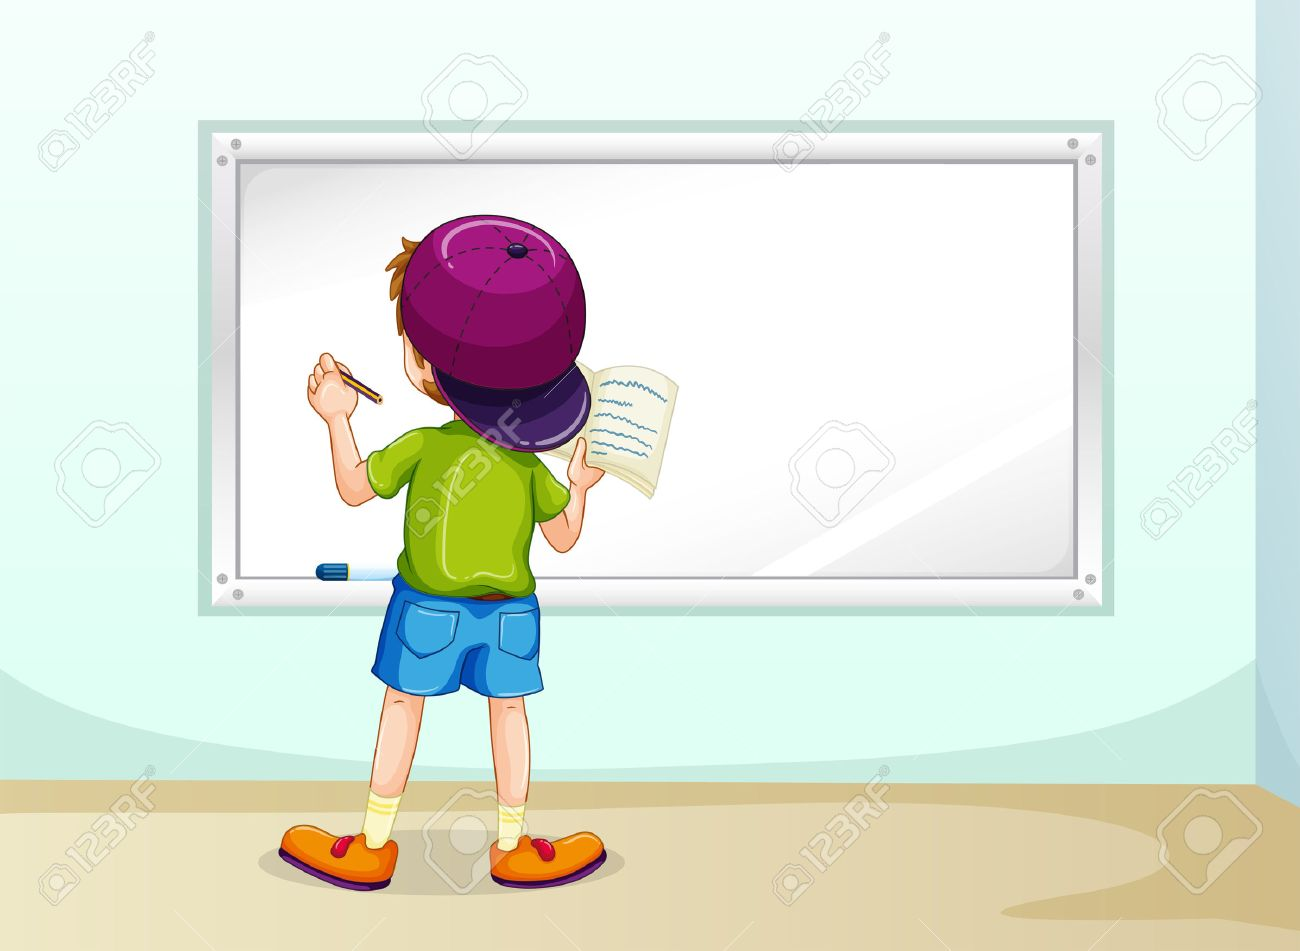 Image result for writing on a whiteboard